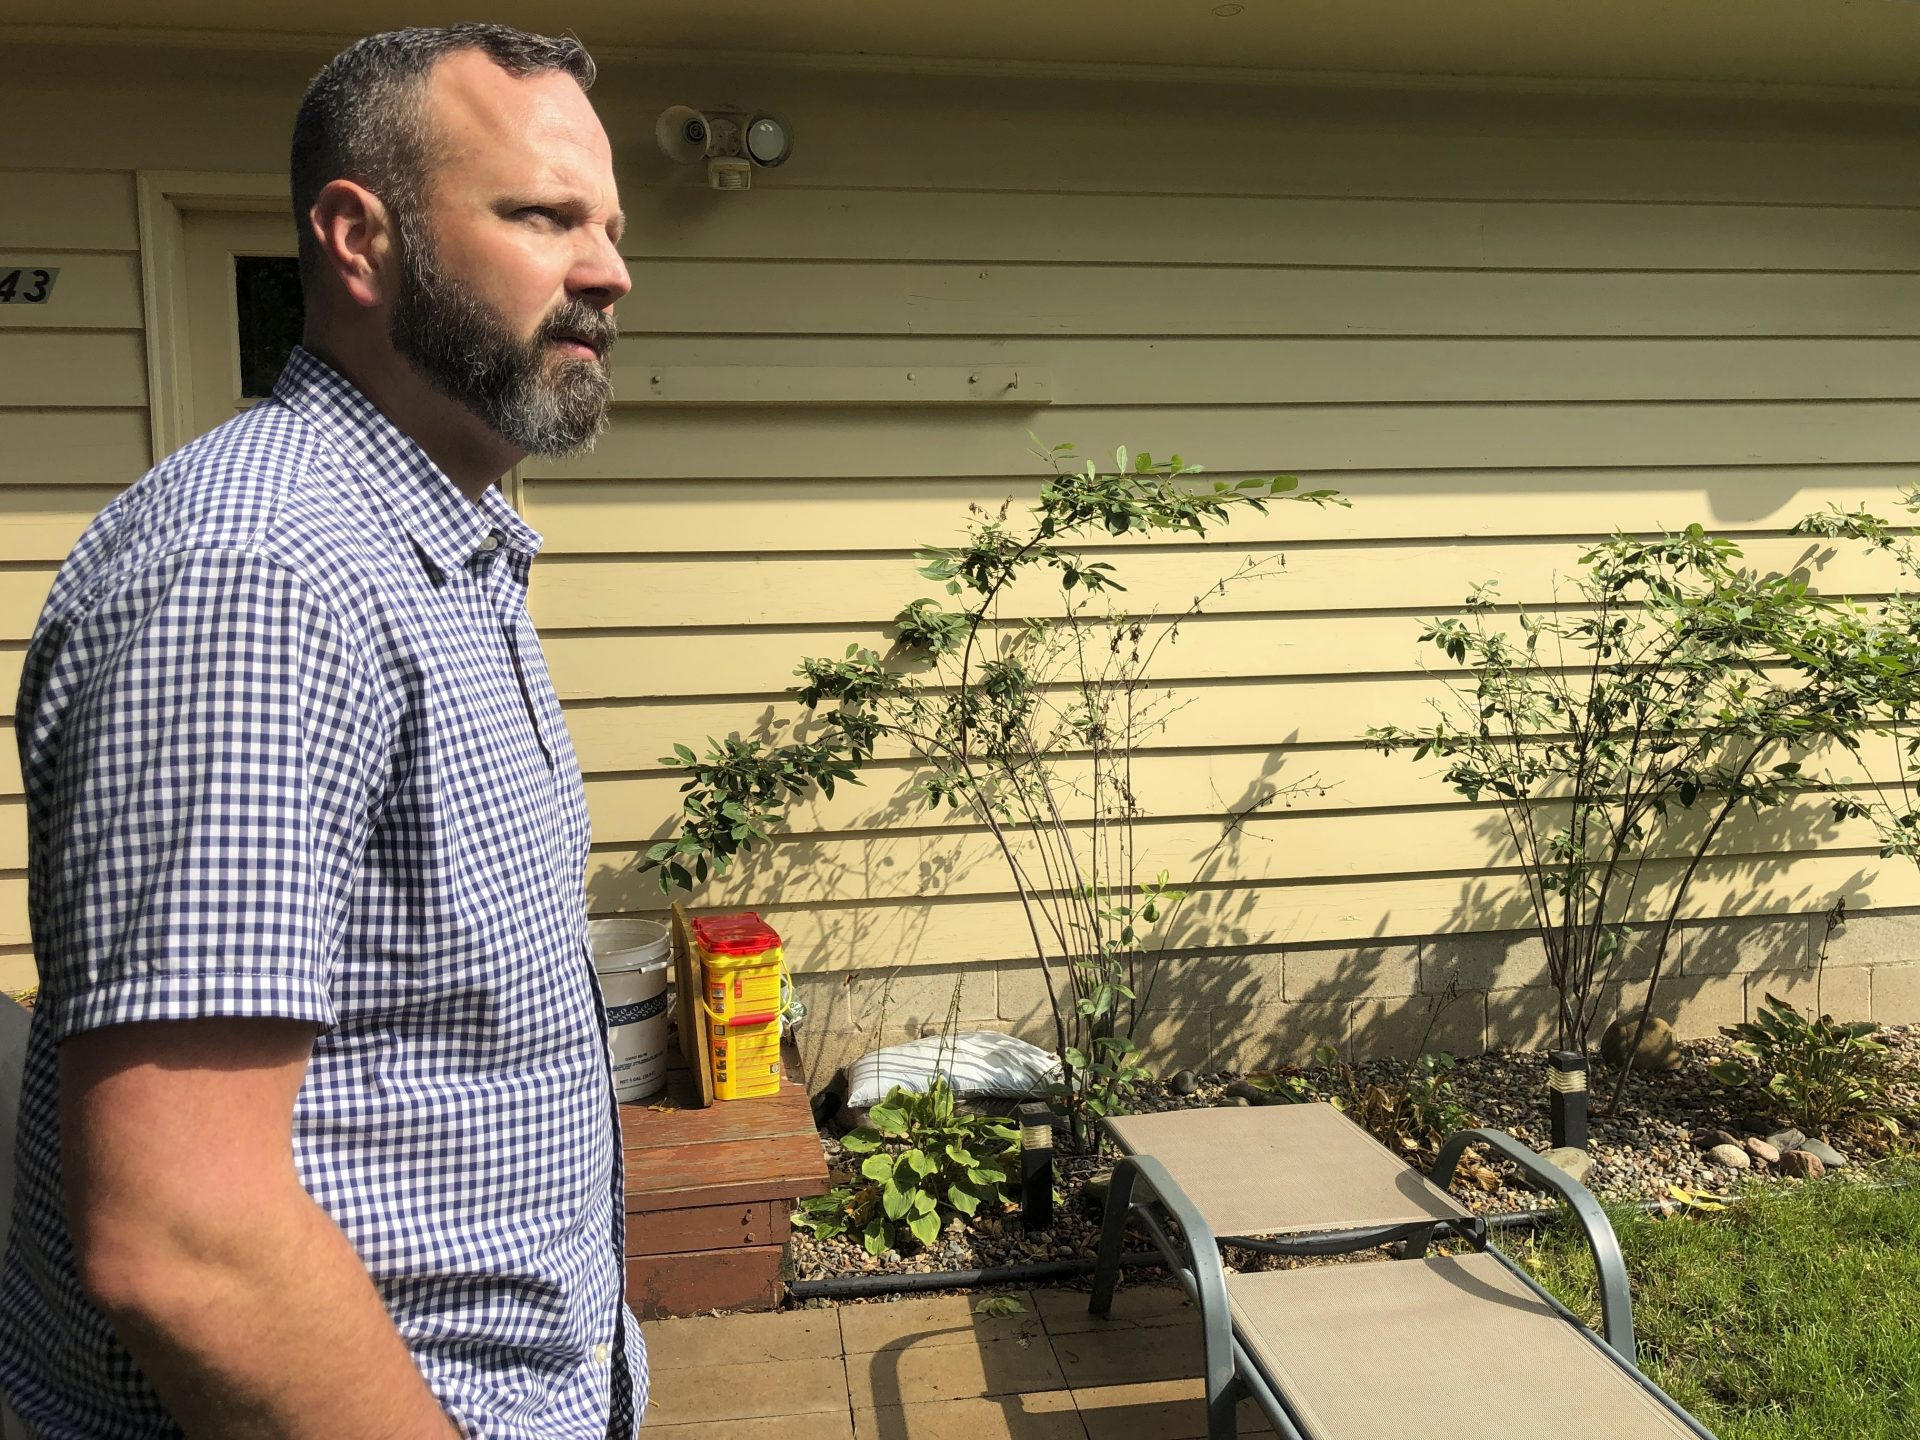 """Dr. Jim Richter, a survivor of sexual abuse by a priest who is a member of the review board in the Archdiocese of St. Paul and Minneapolis, walks outside his home in Minneapolis, on Sept. 21, 2019. Richter praises the work of the review board he serves on, but says others are full of """"unqualified, well-meaning, but ultimately incompetent"""" members."""